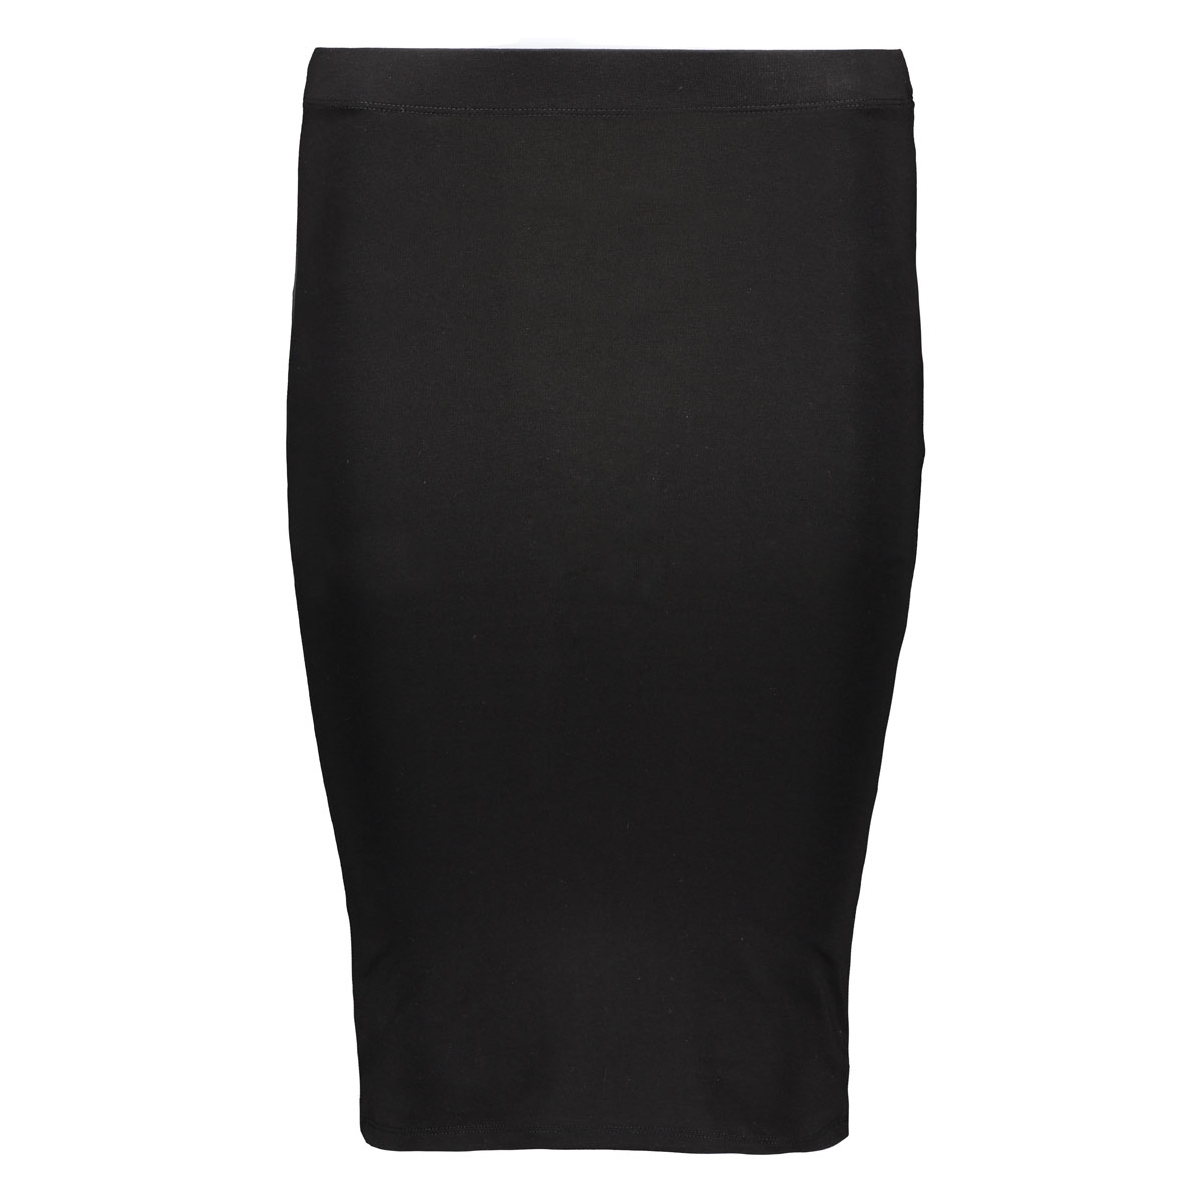 viofficiel pencil skirt 14032504 vila rok black